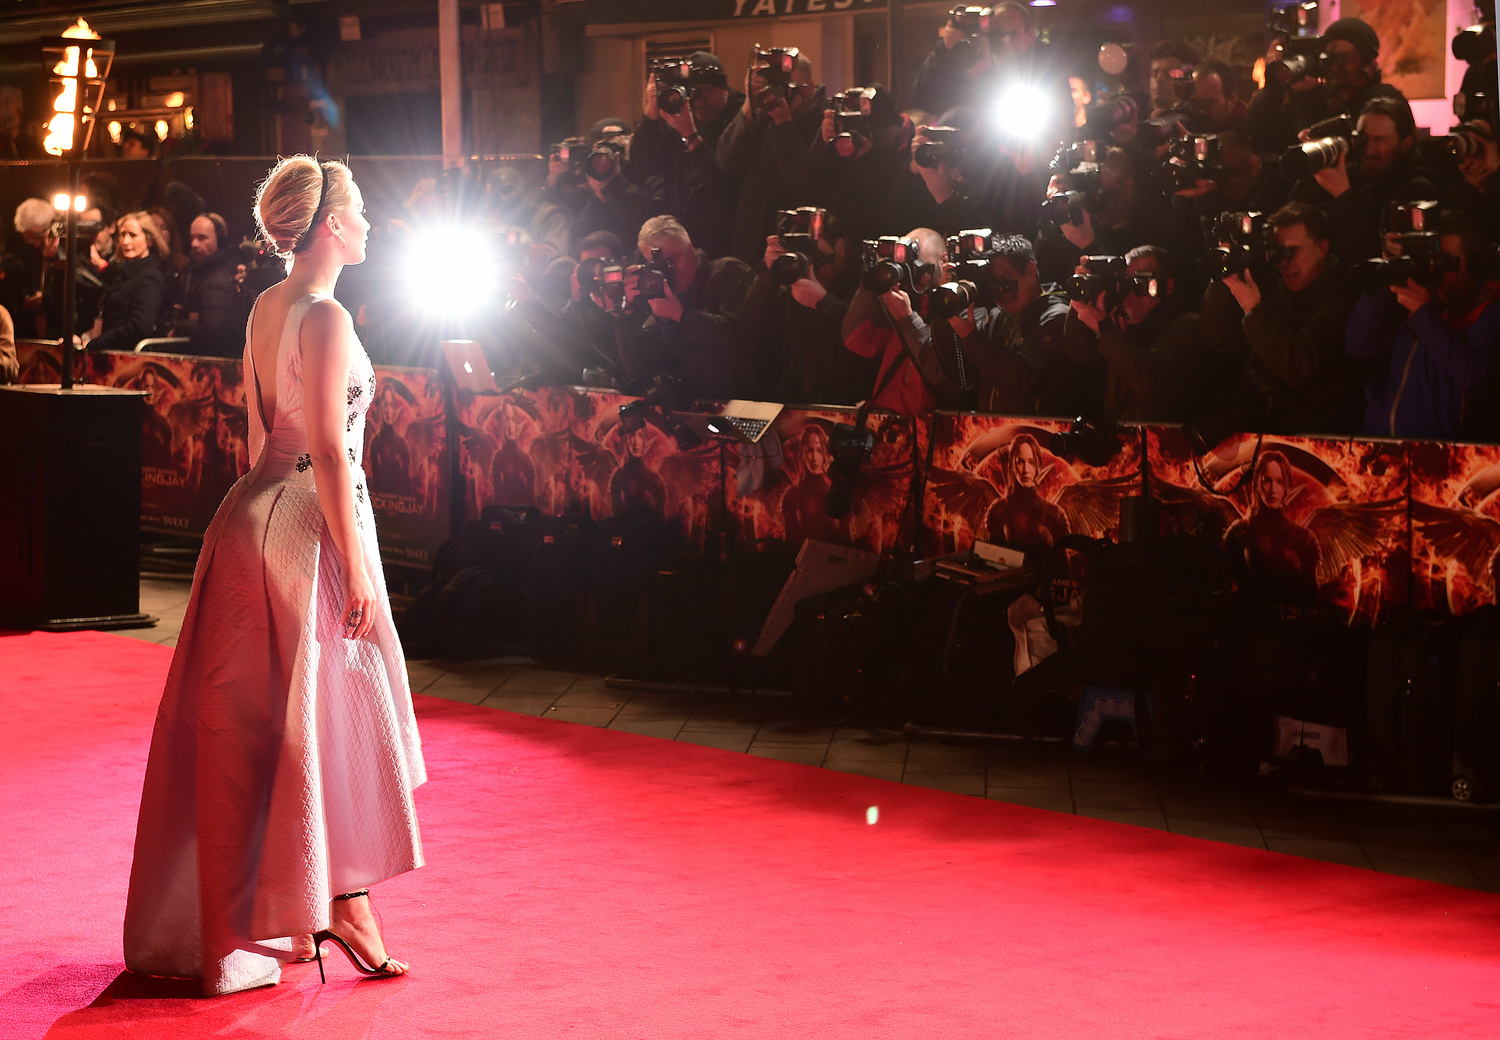 Jennifer Lawrence arrives at the UK film premiere of 'The Hunger Games: Mockingjay, Part 1,' on Nov. 10 at the Odeon in Leicester Square, London. Credit: Courtesy of TNS